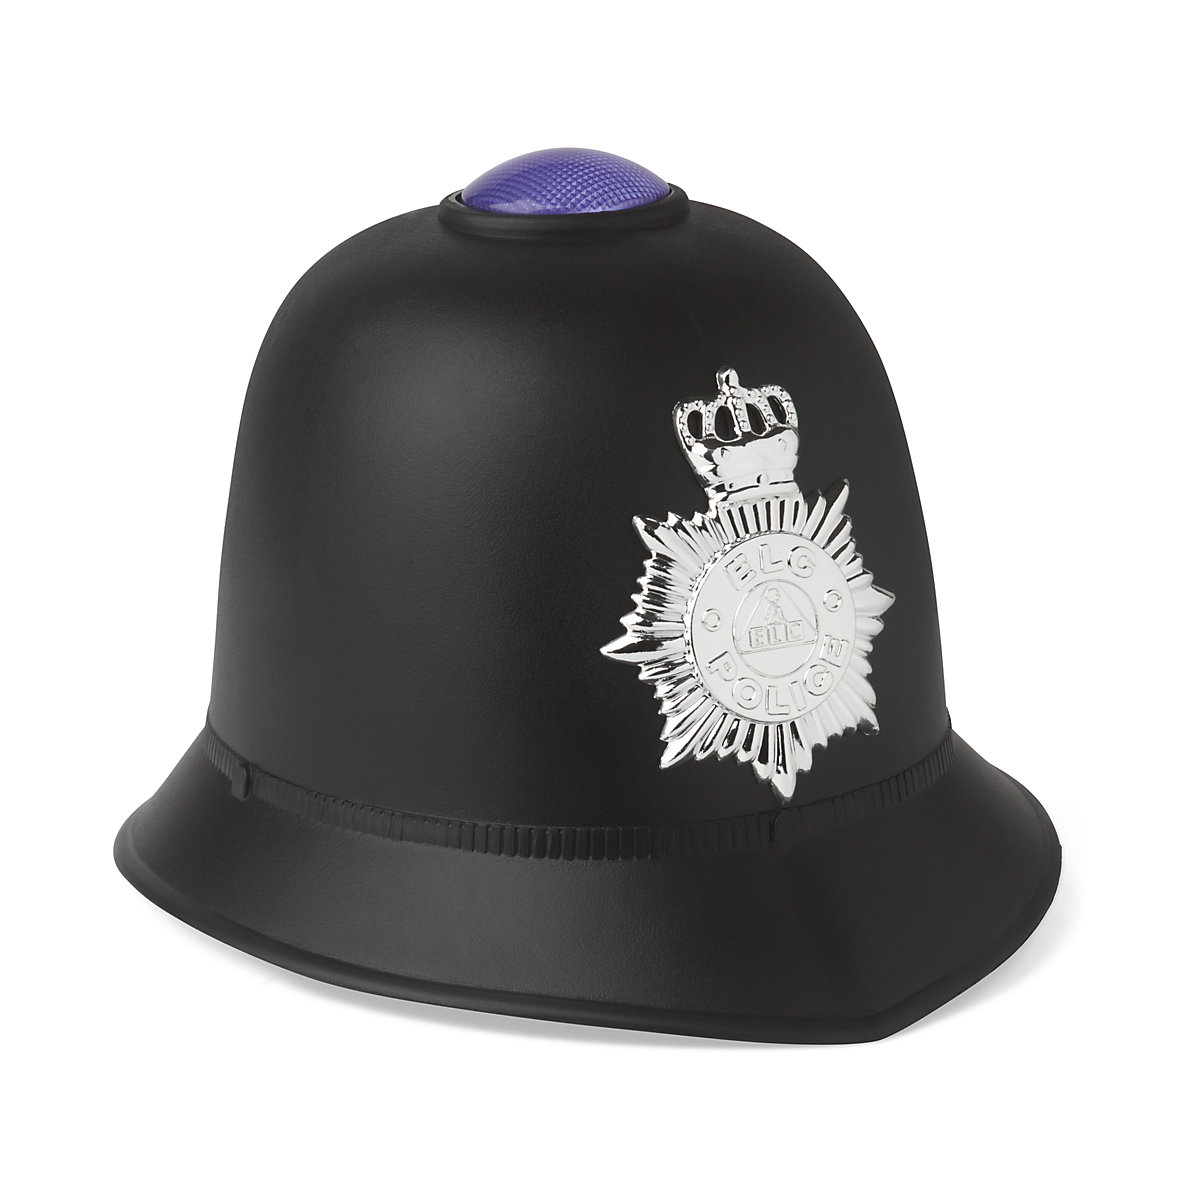 New ELC Boys and Girls Light and Sound Police Helmet Toy From 3 years - Early Learning Centre Gifts